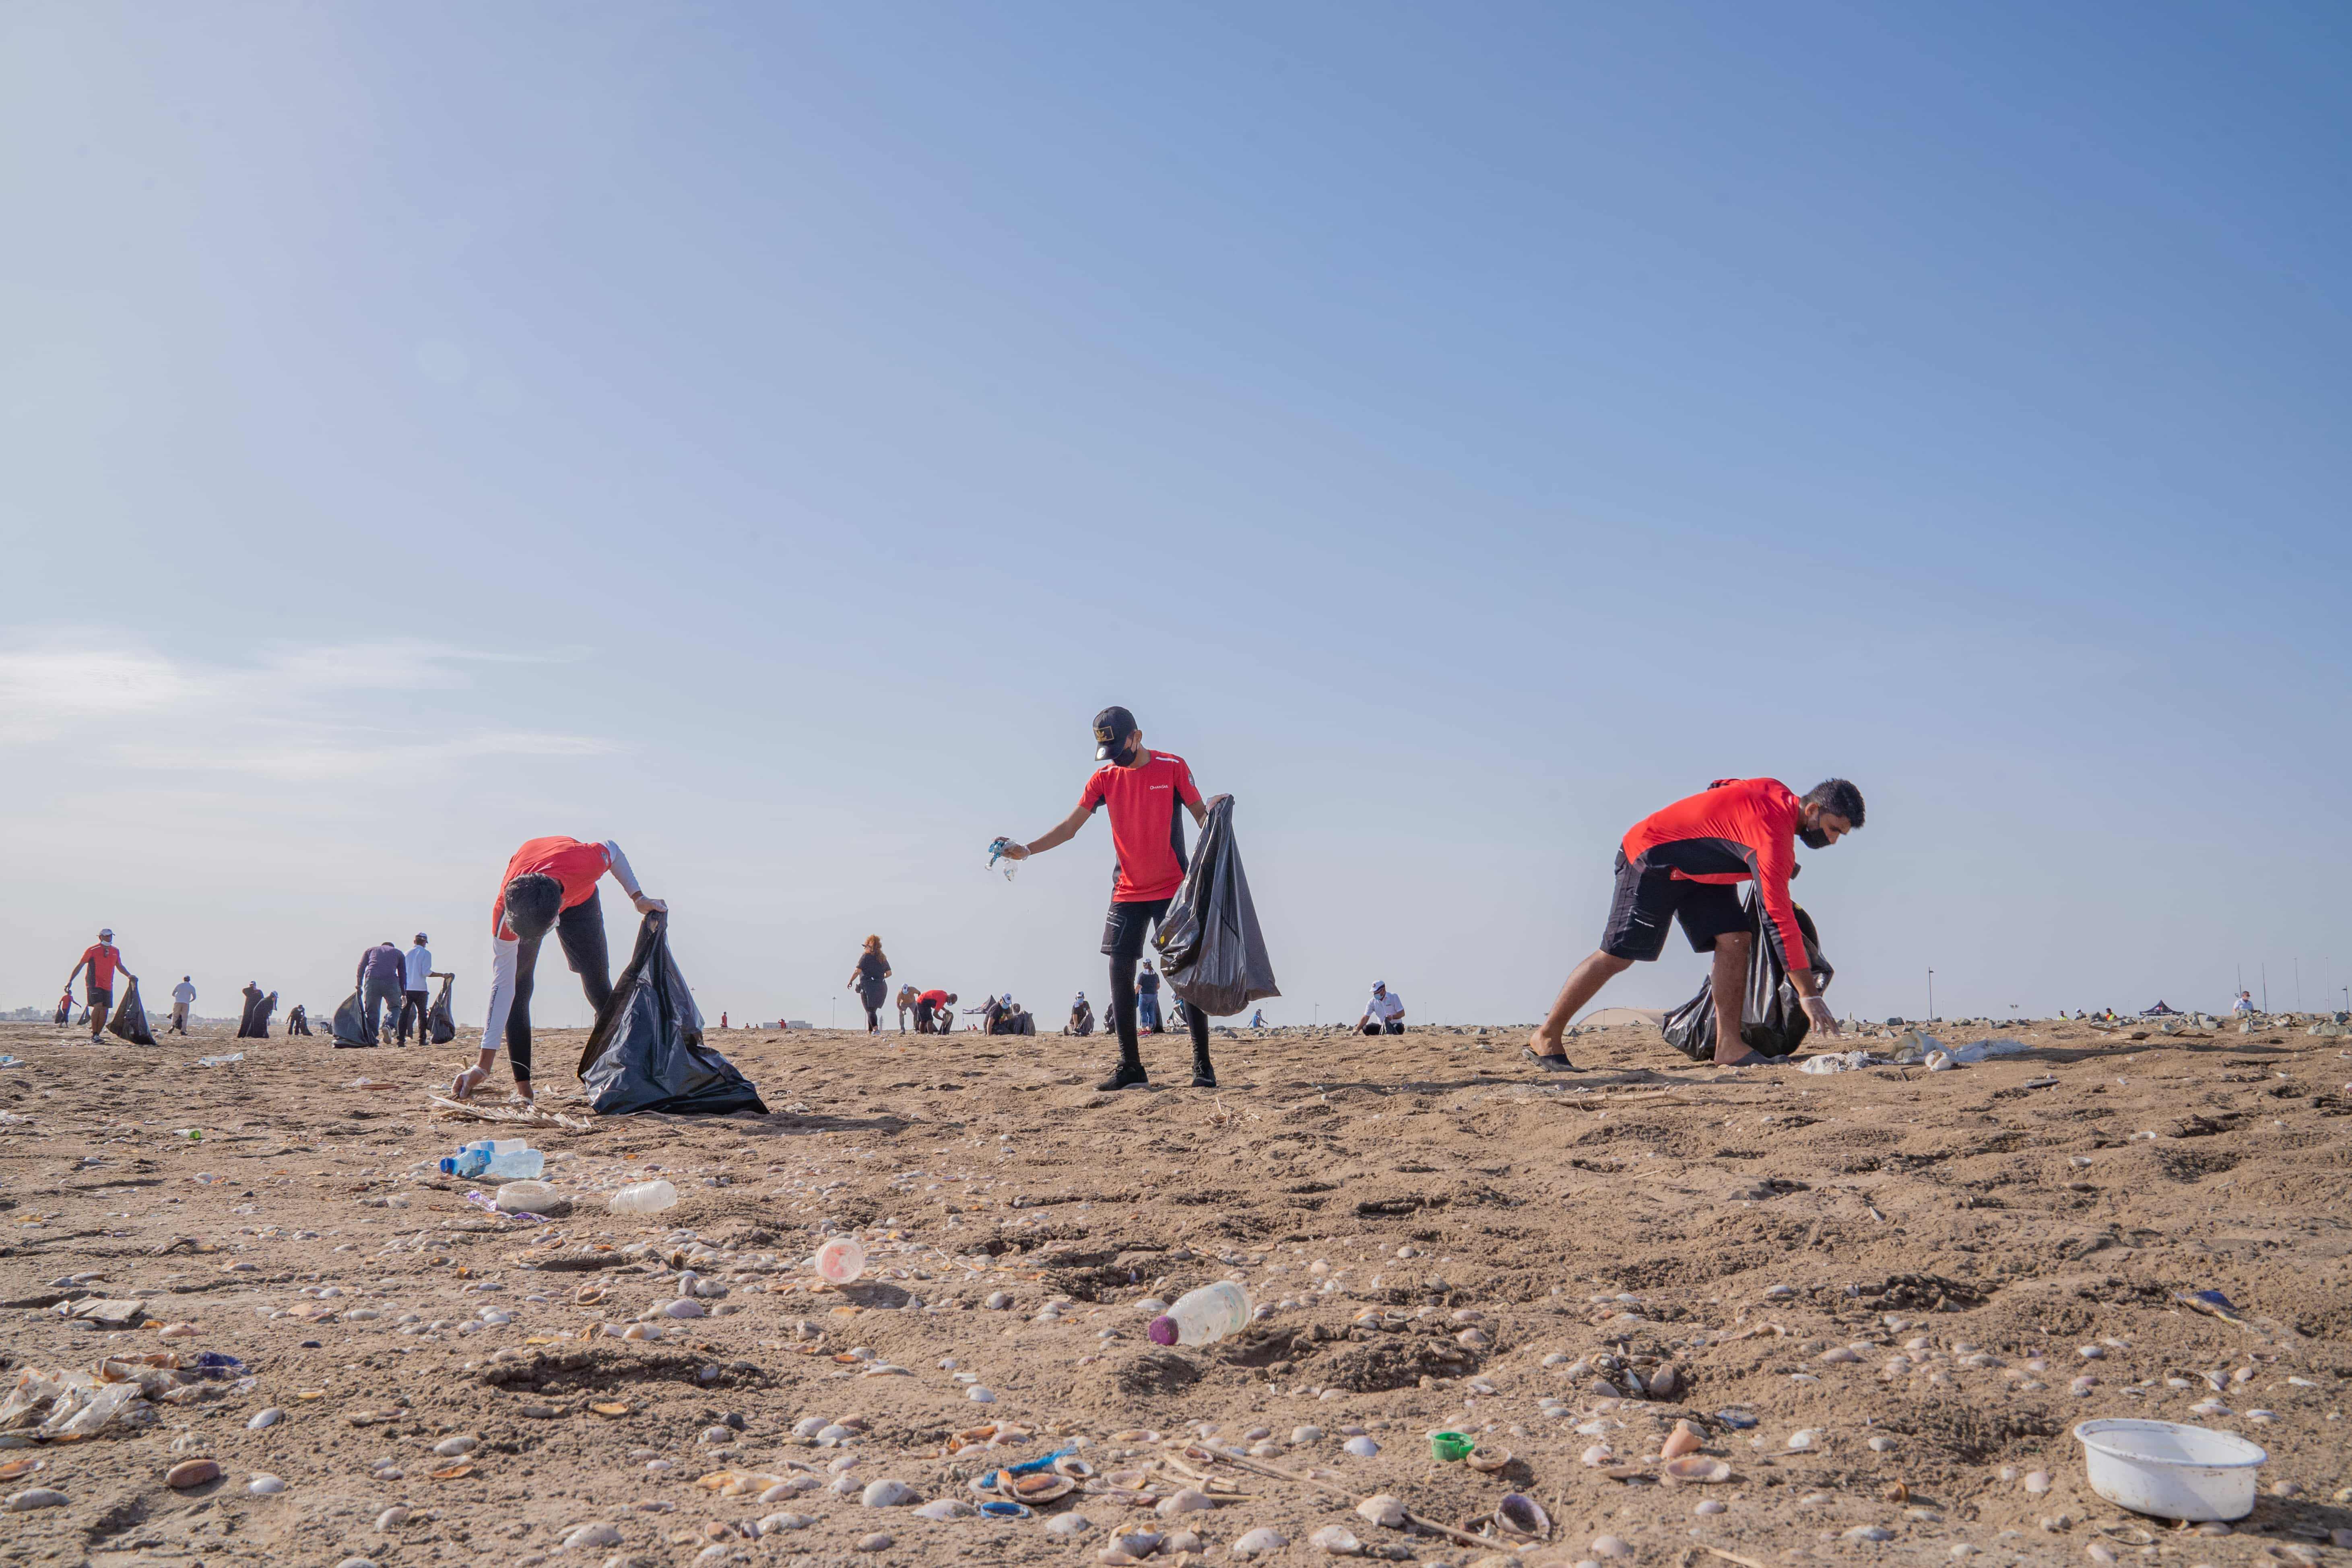 Oman Sail marks World Clean-Up Day with beach clean-up event in Mussanah